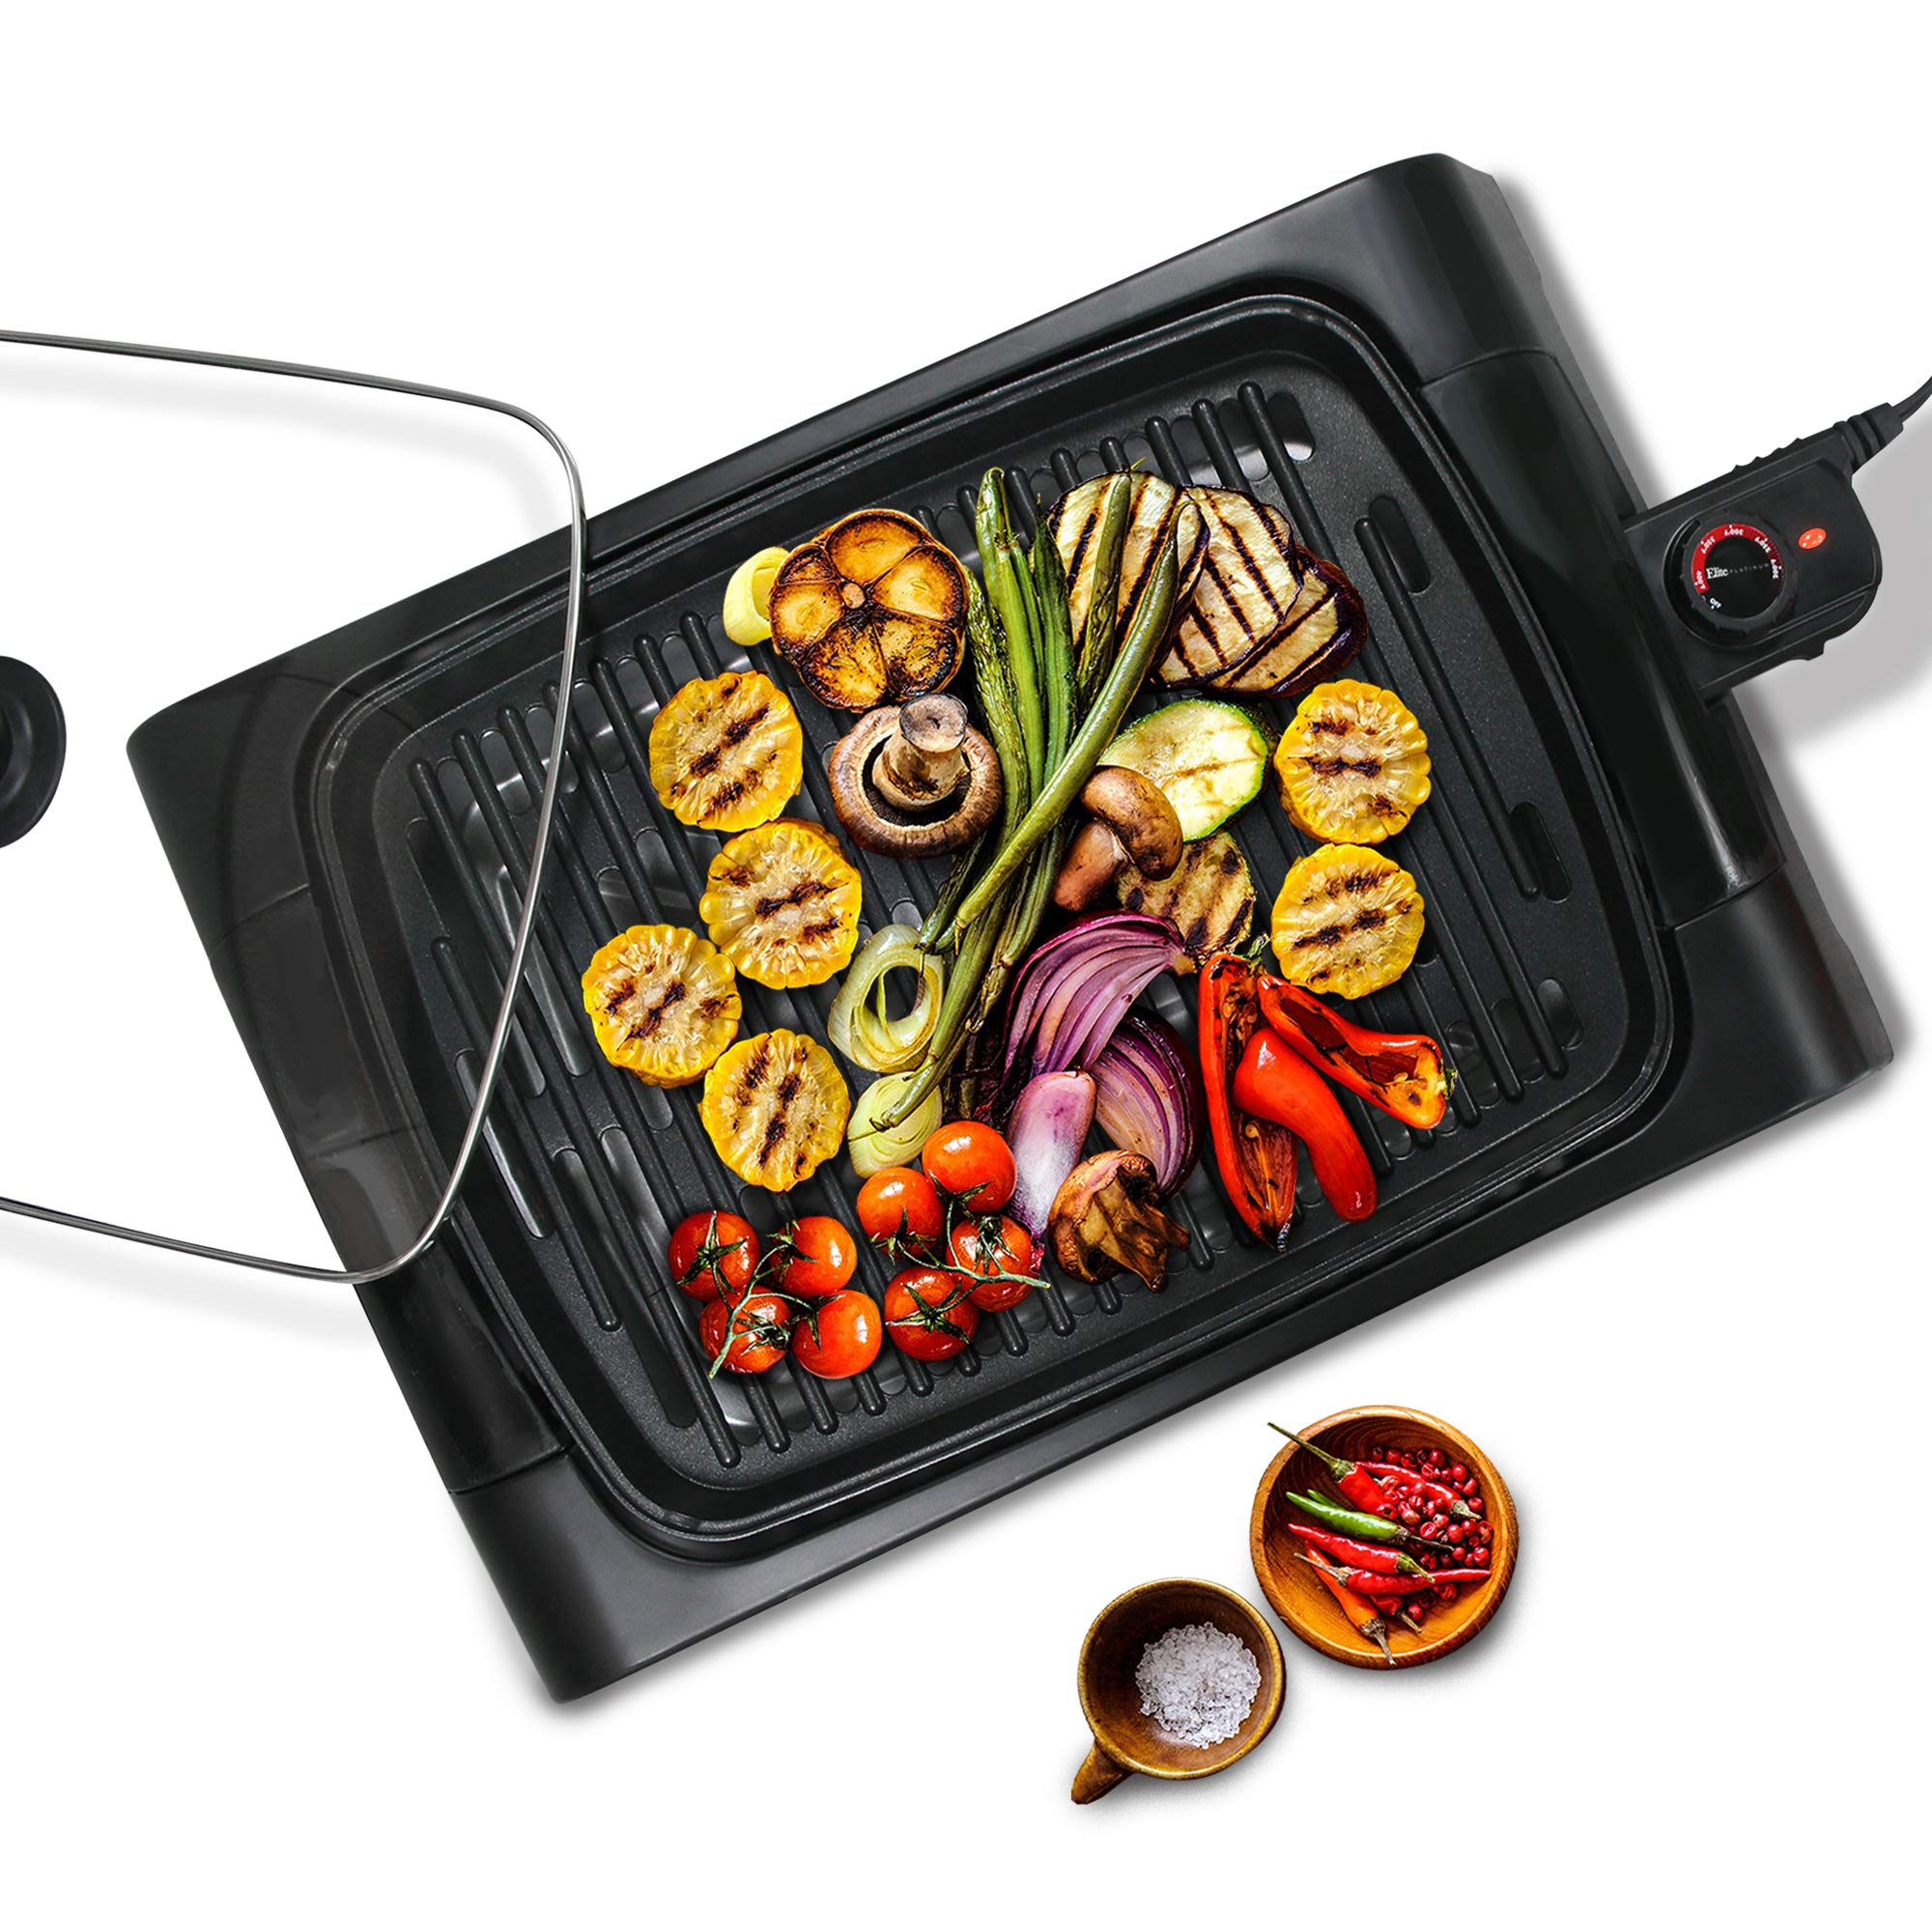 Maxi-Matic EGL-6501 XL Indoor Electric, Nonstick Grilling Surface, Faster Heat Up, Ideal for Meat Fish, Vegetables & Low-Fat Meals, Easy To Clean Design, 16'' x 12'' Square, Black by Maxi-Matic